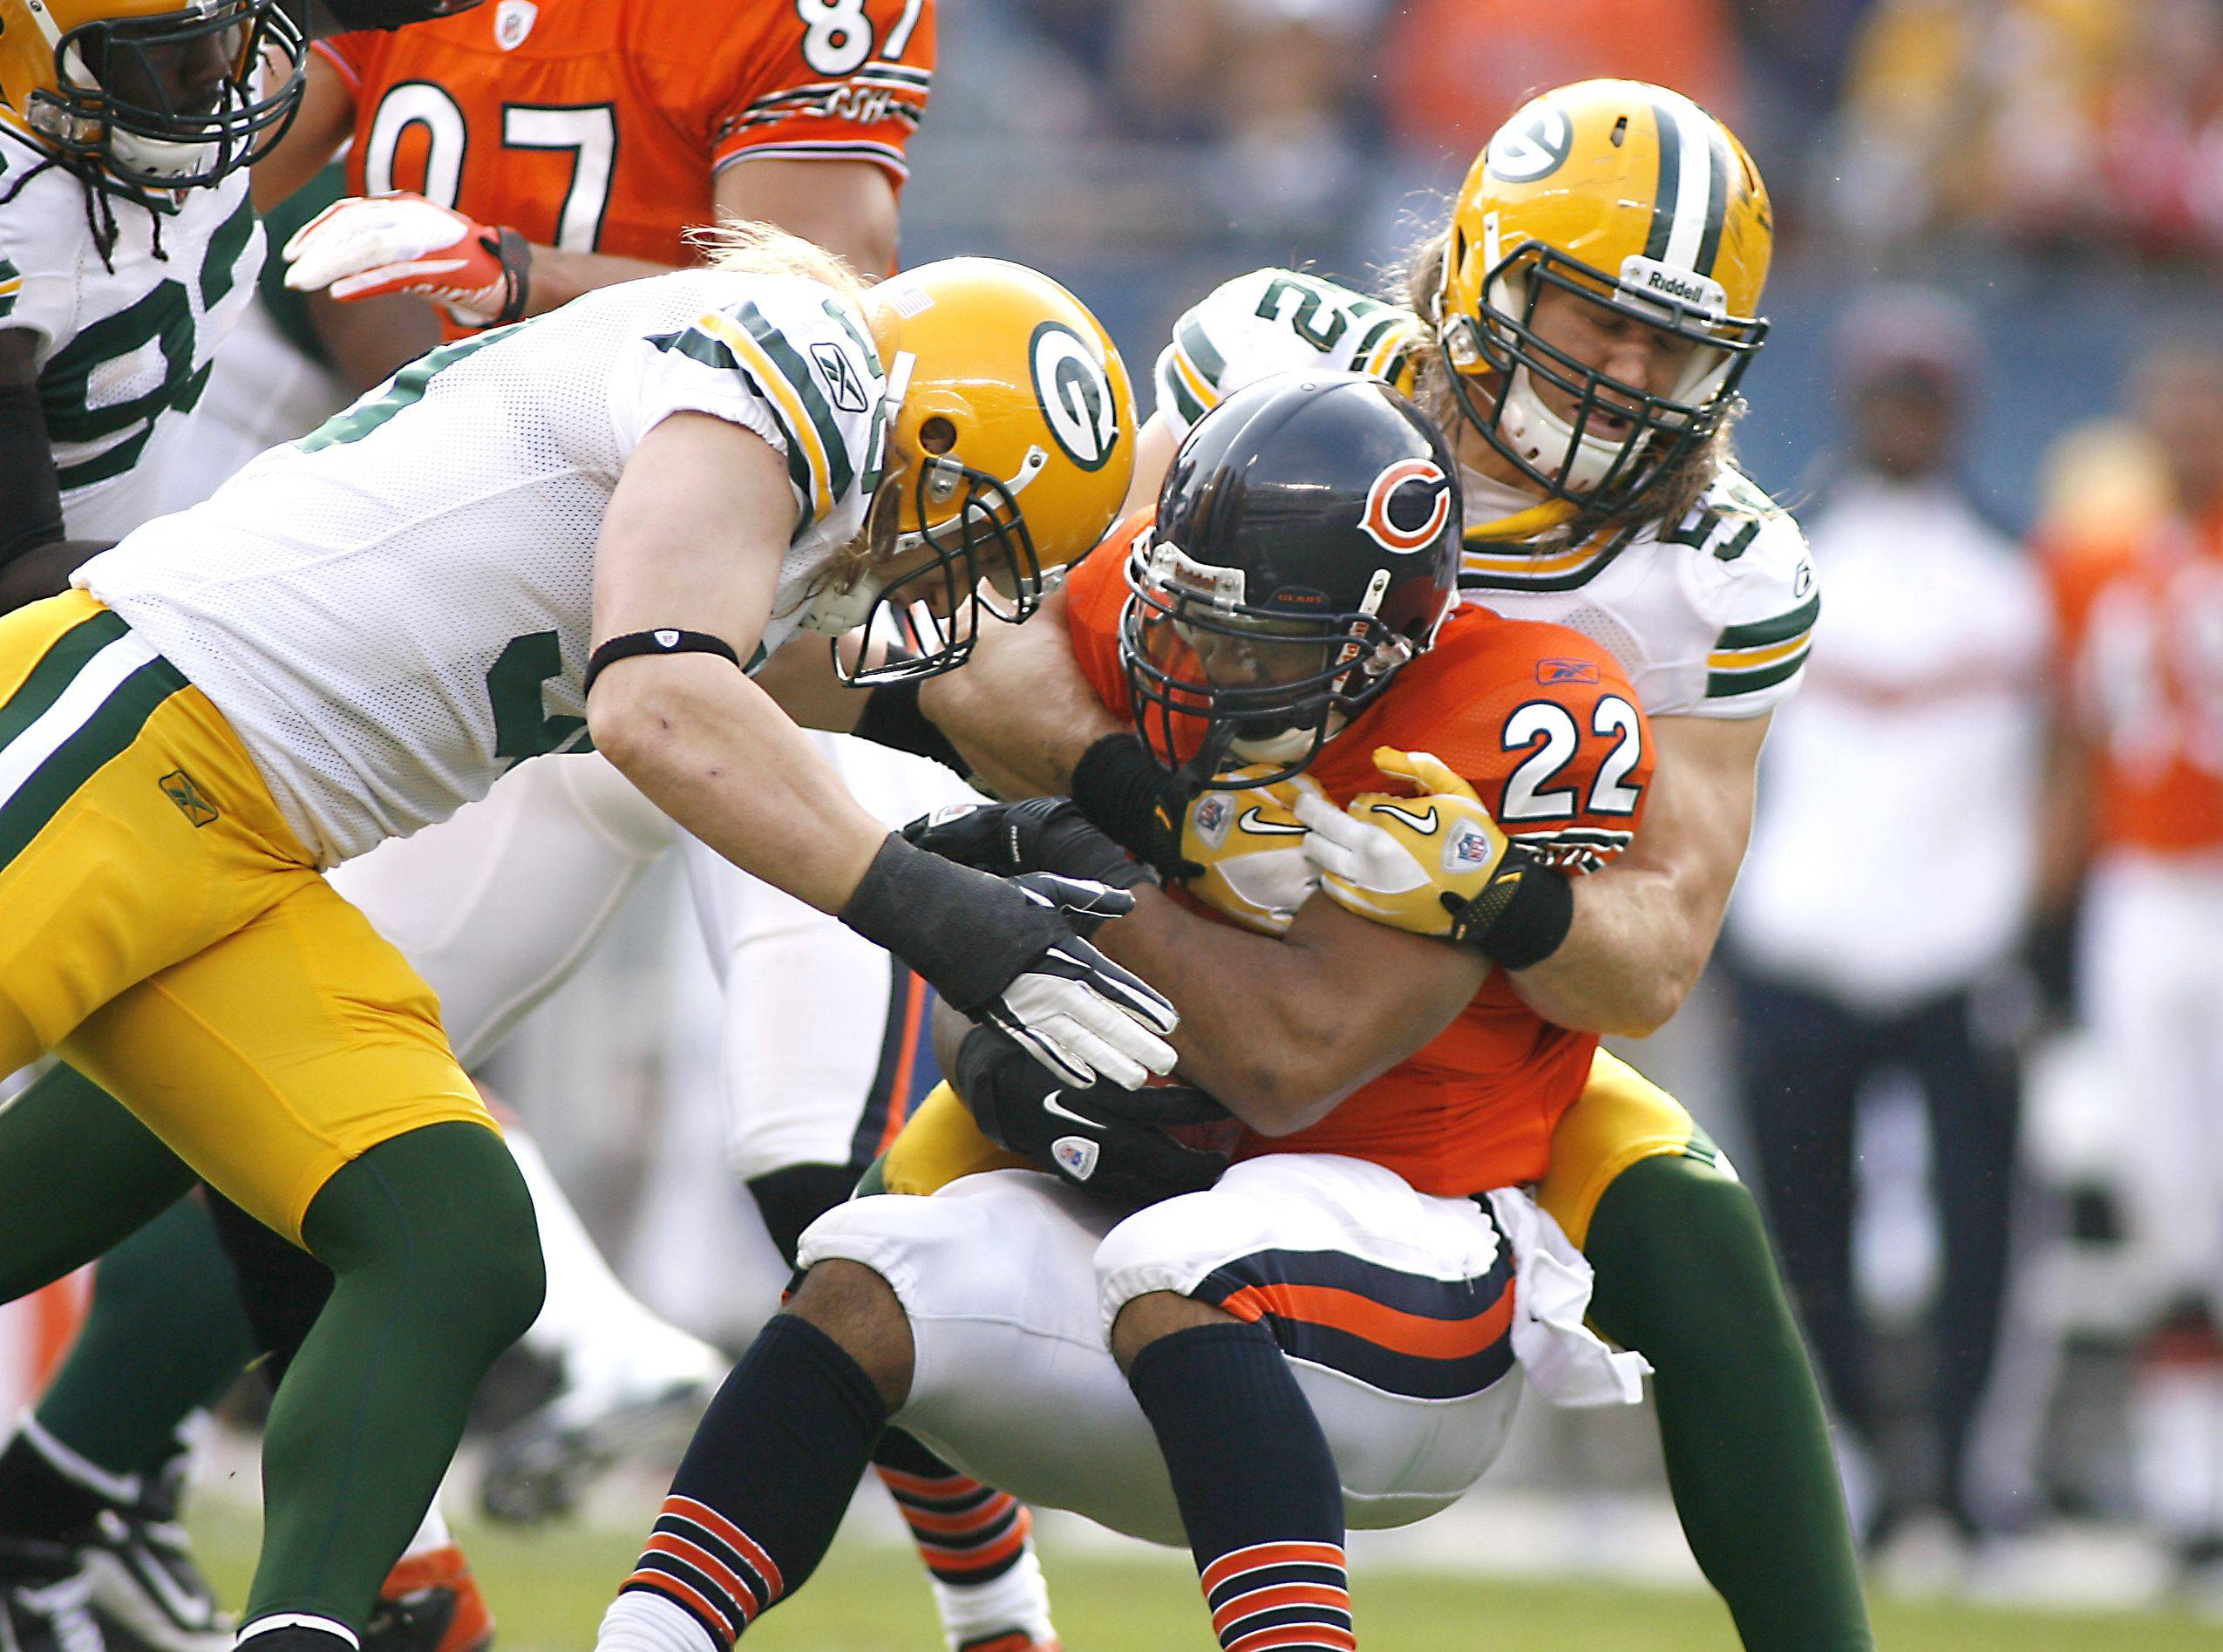 The Bears' Matt Forte gets dropped for a loss in the backfield by A.J. Hawk and Clay Matthews during the first half of the Green Bay Packers' 27-17 win over the Chicago Bears.